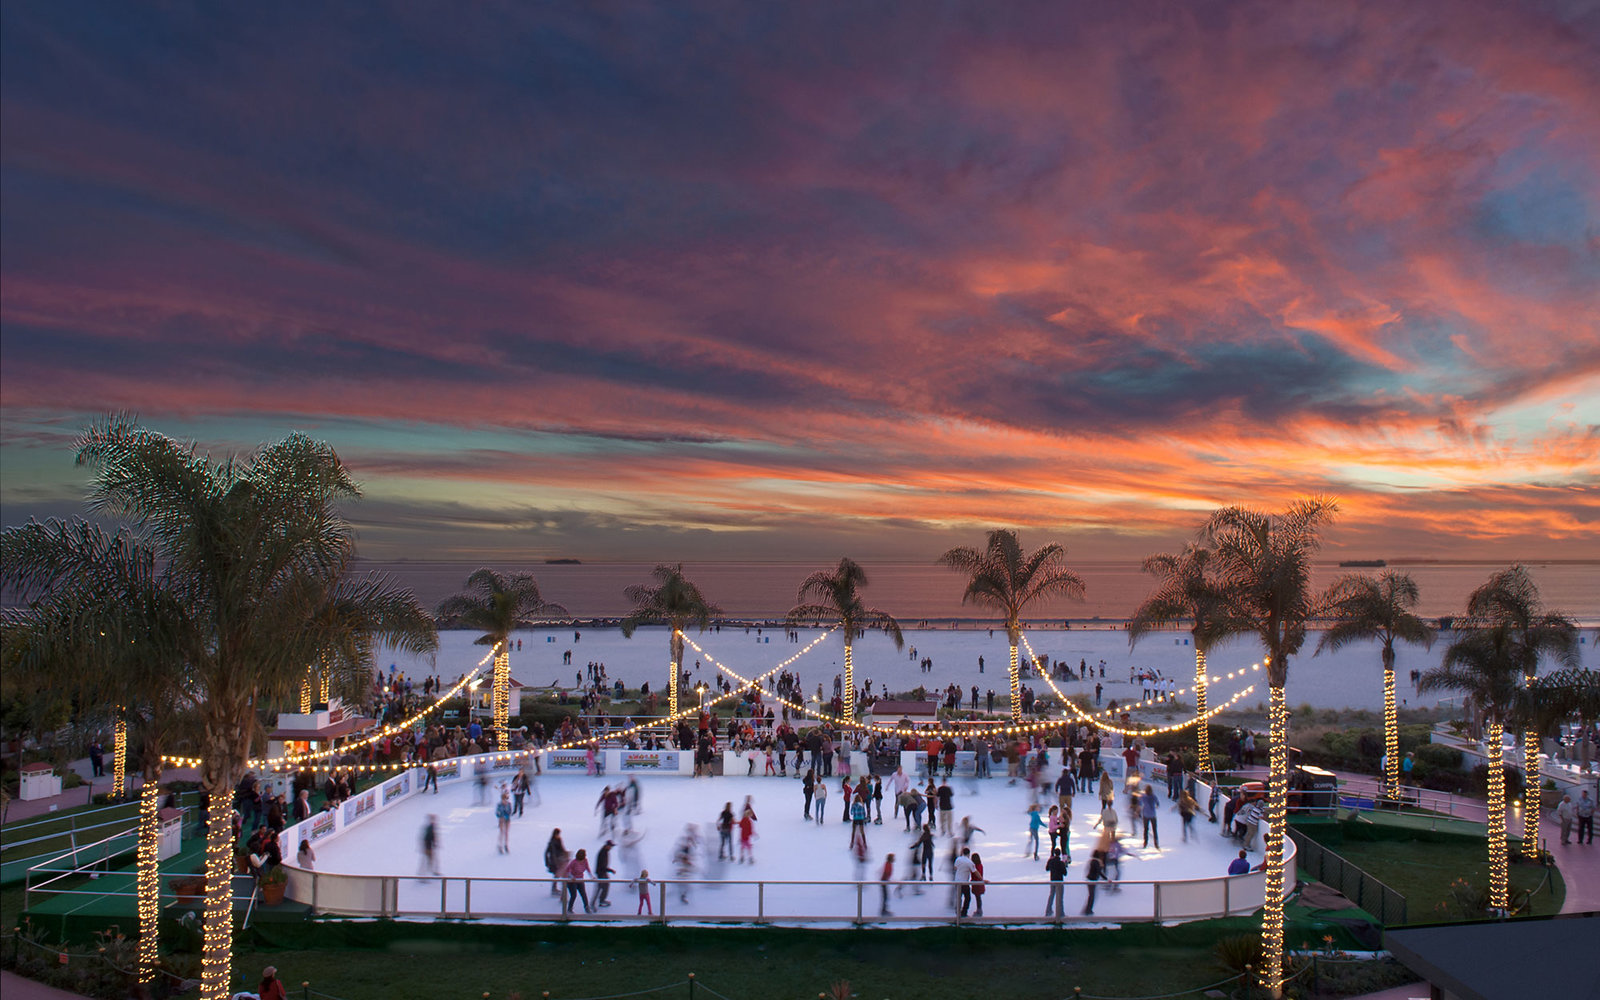 The ice skating rink at the Hotel Del Coronado is photographed at sunset by William Morton Visuals.